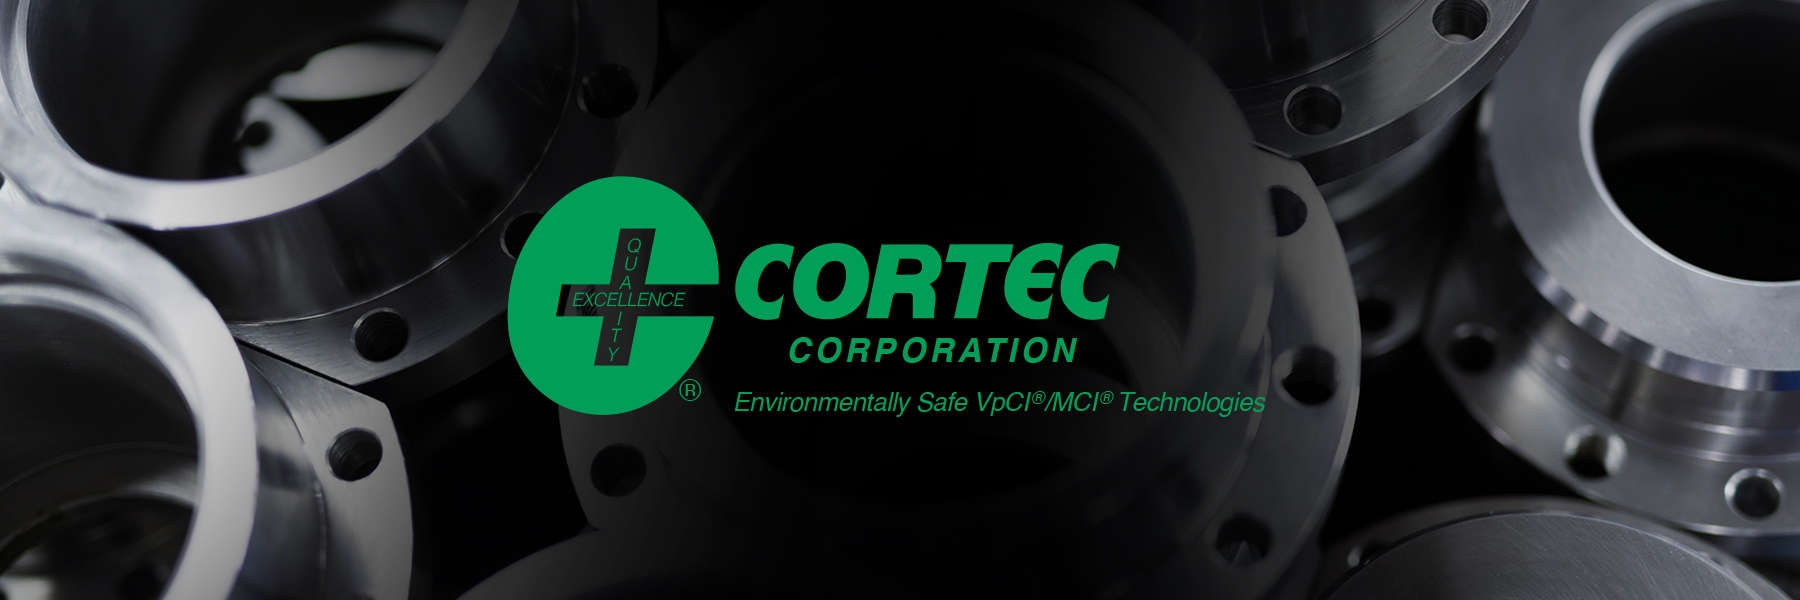 Corrosion Inhibiting Technologies for Concrete-Industrial background from metal parts produced in metal industry factory